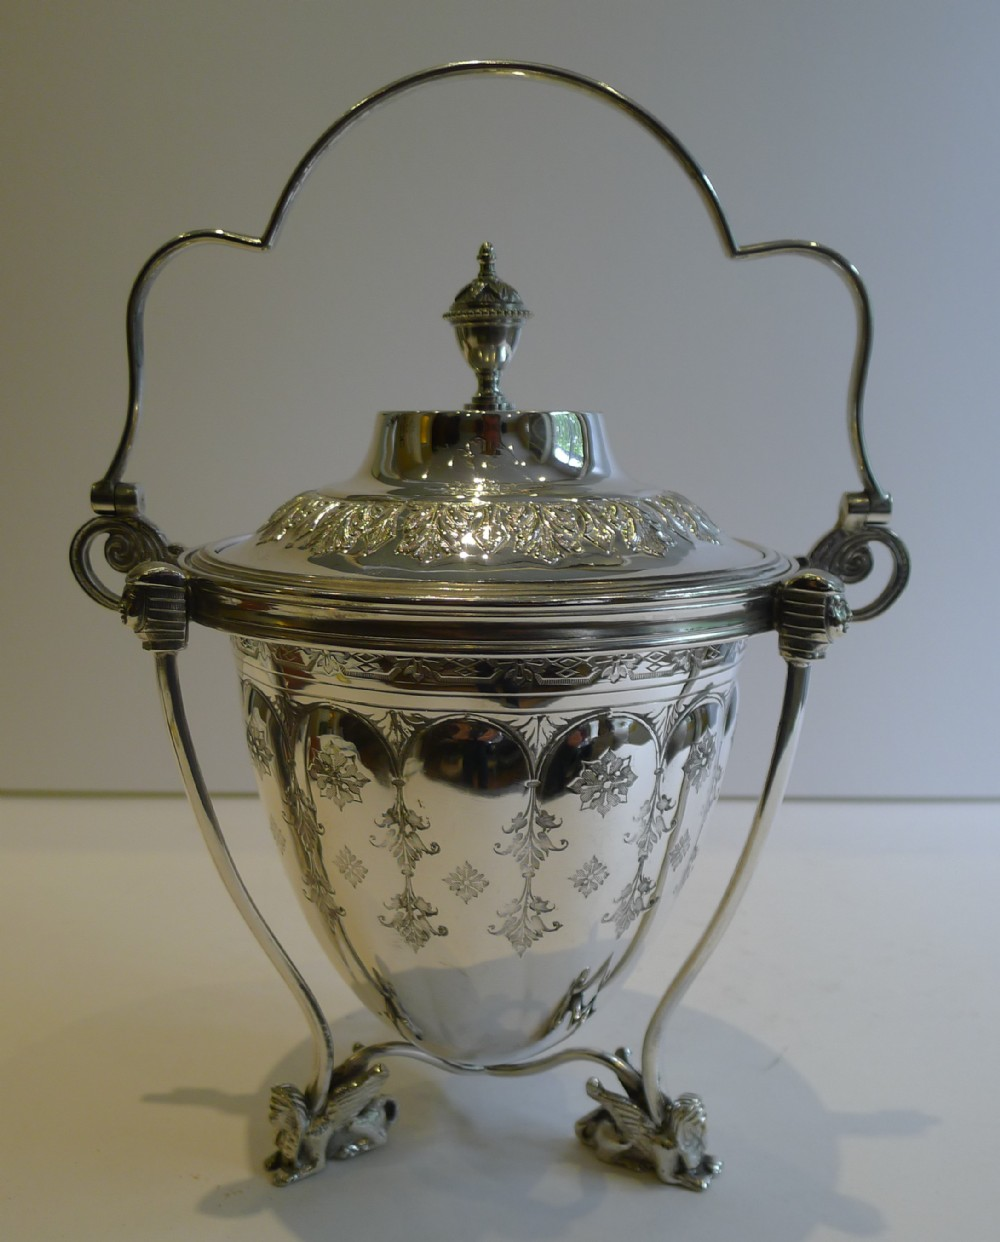 scarce antique english silver plated biscuit box or barrel c1880